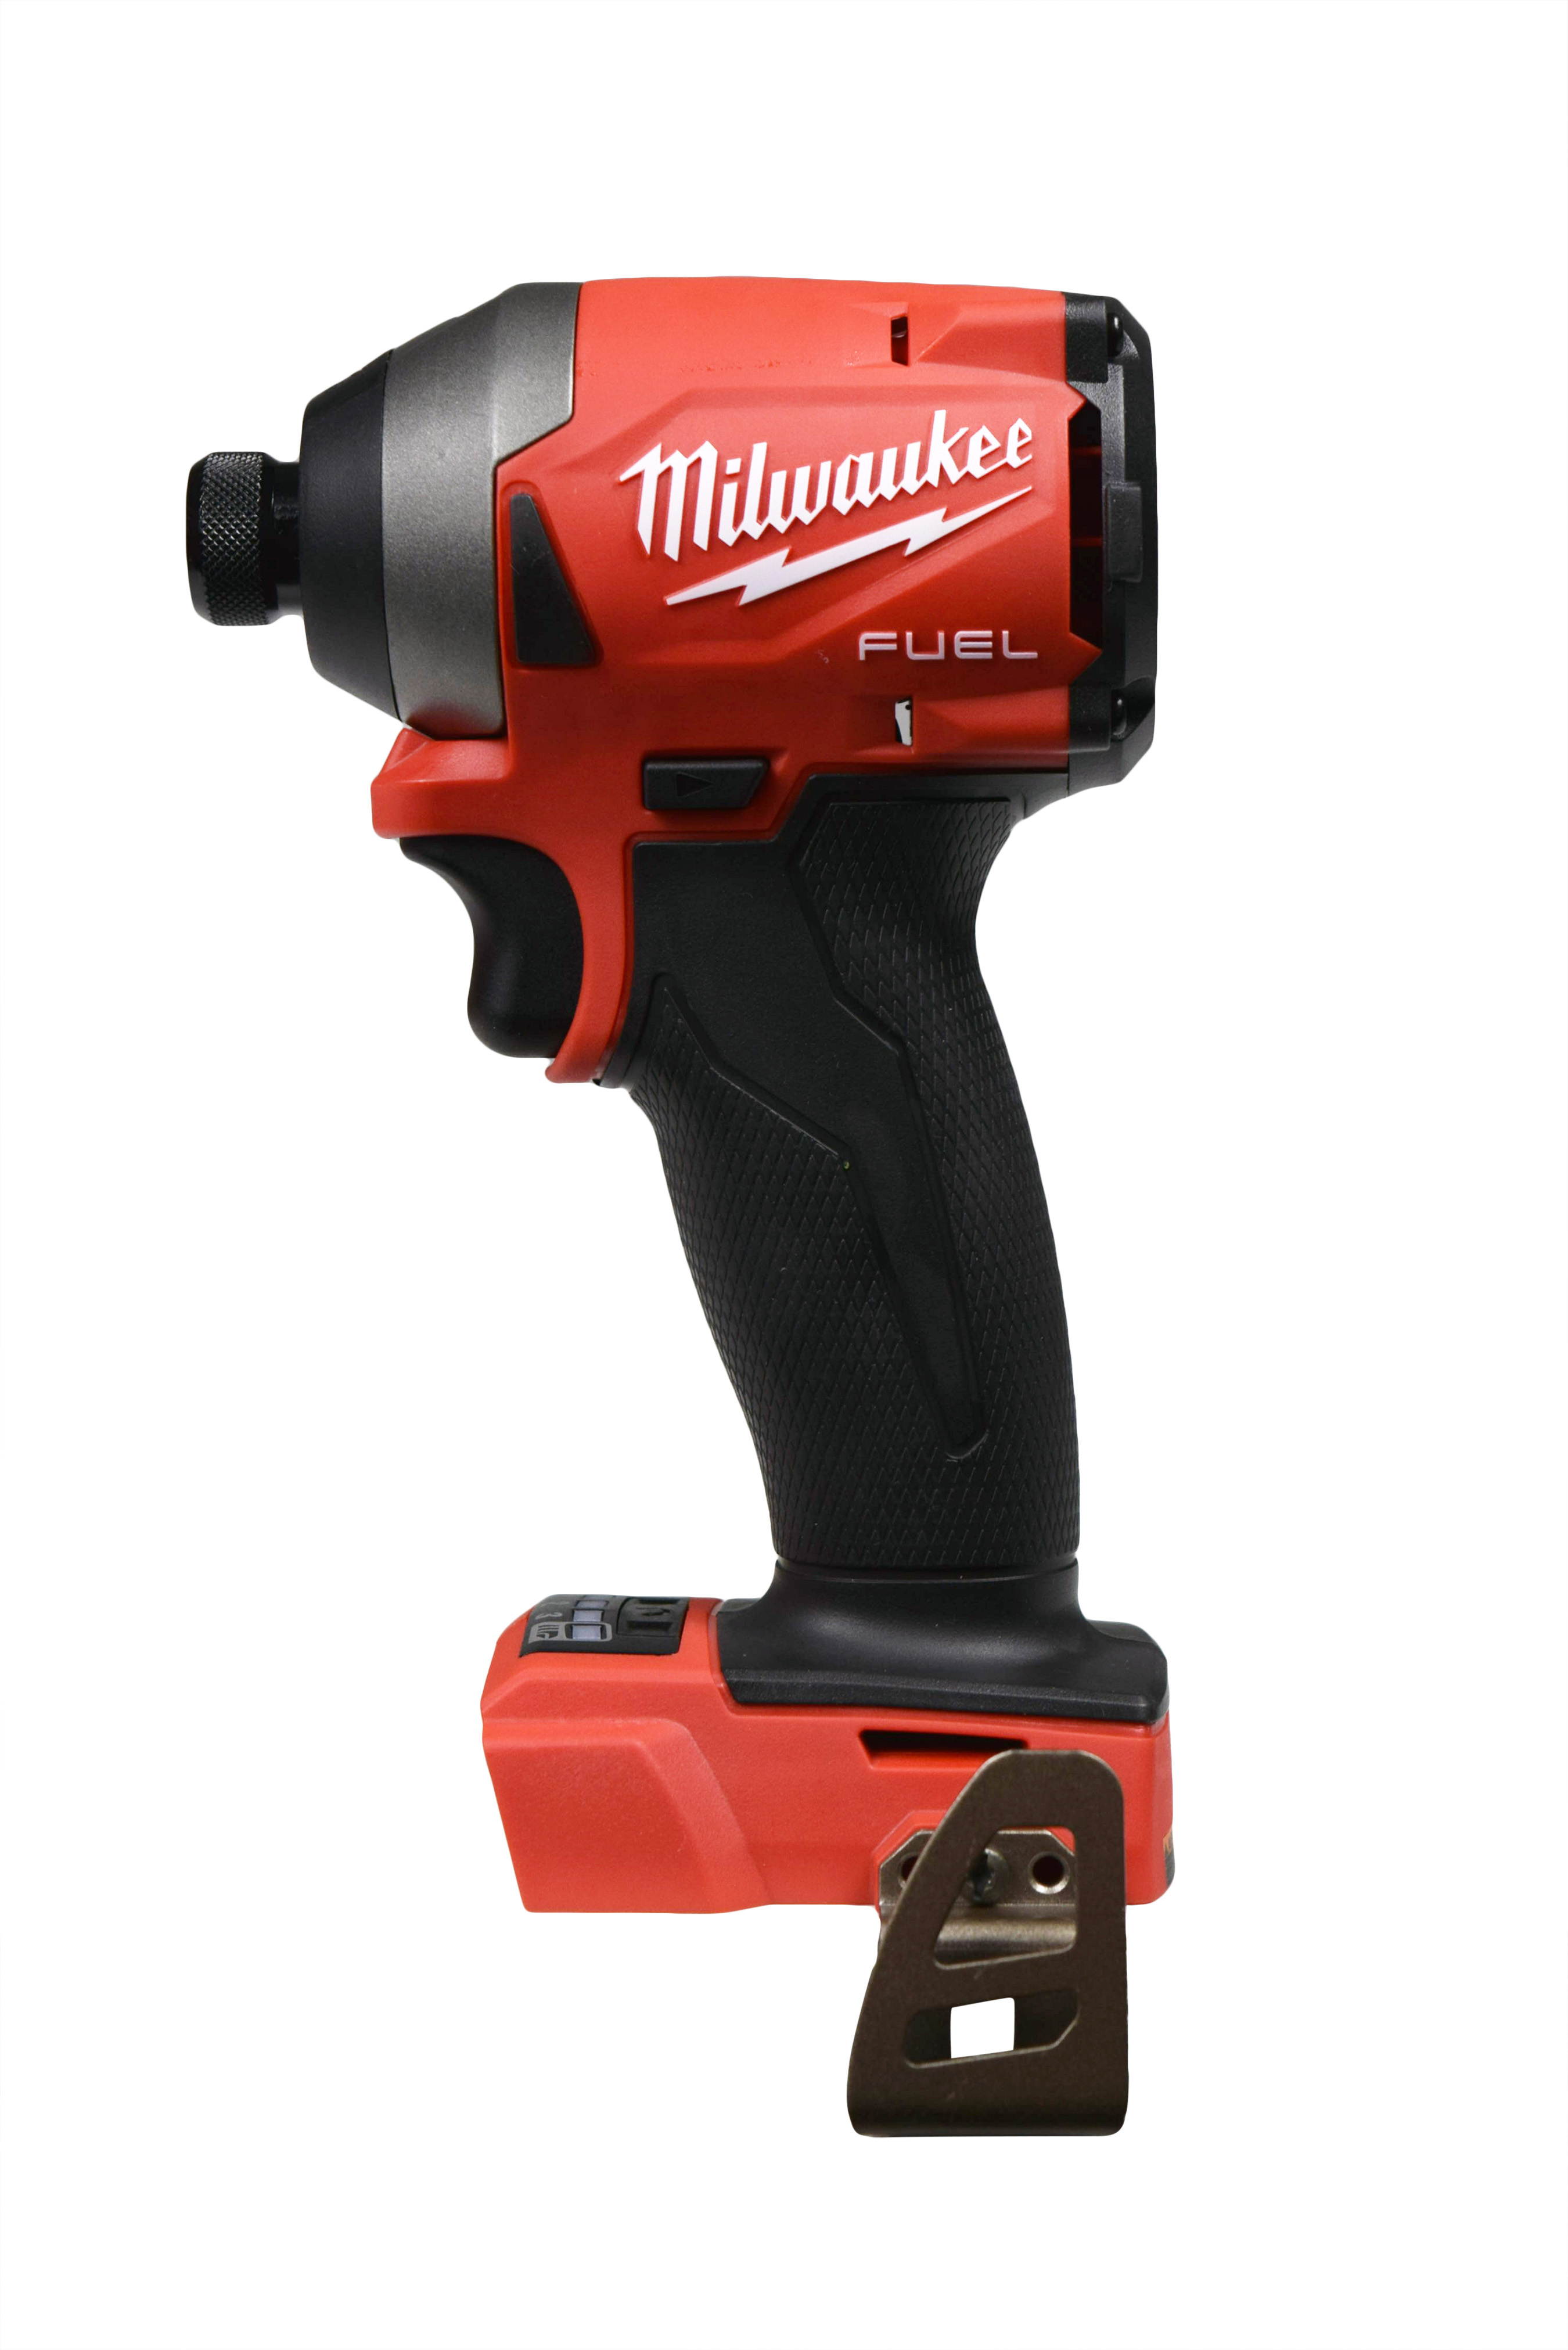 Milwaukee 2853-20 Fuel Impact Driver Brand New